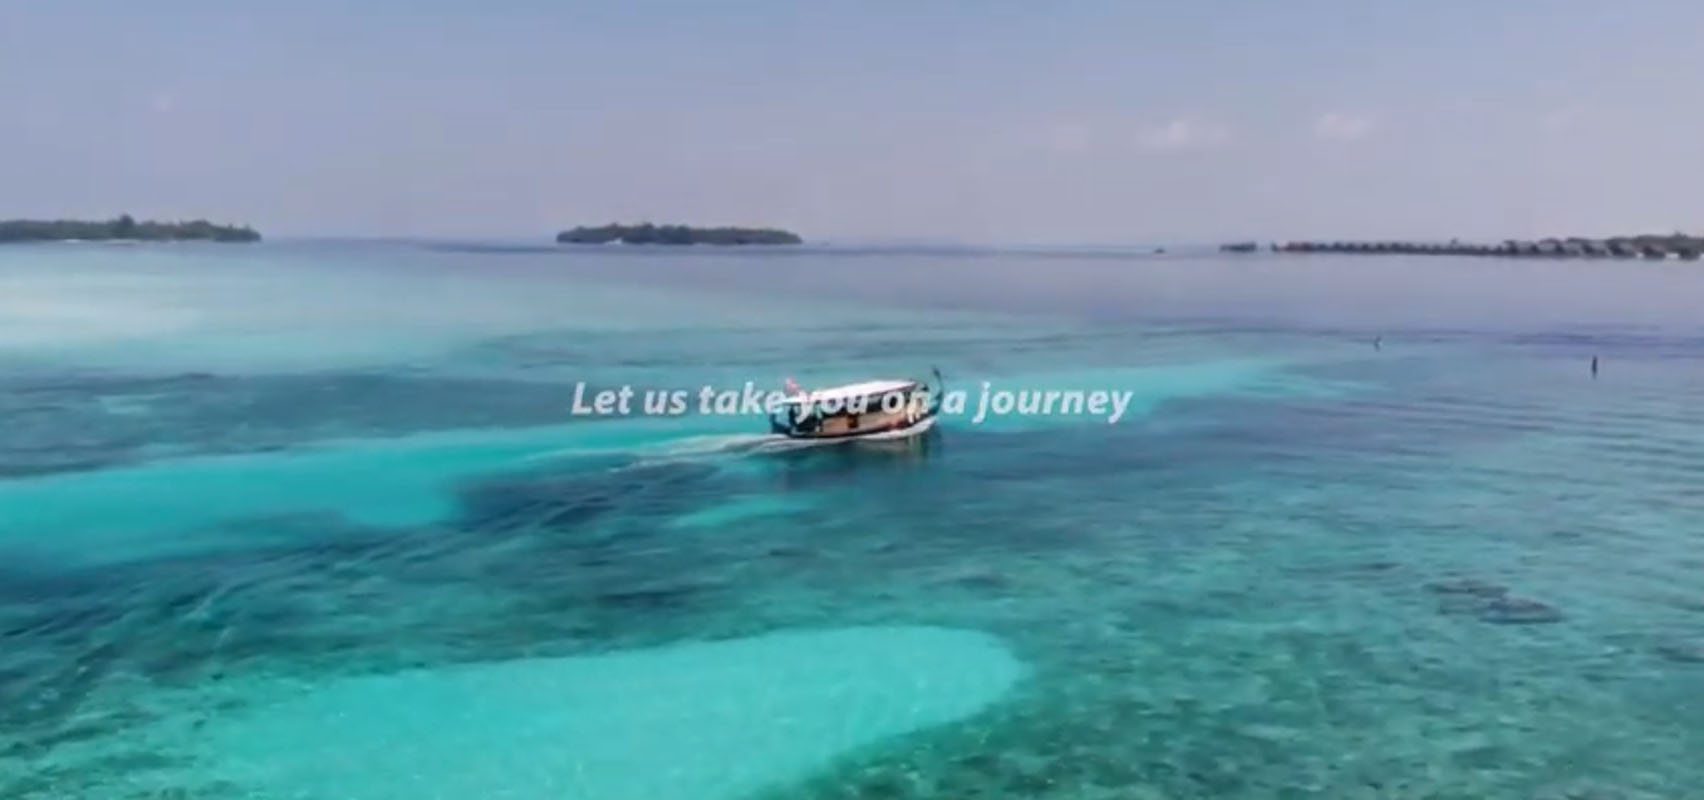 Watch videos of Holiday Inn Kandooma Maldives, Best of Maldives holidays